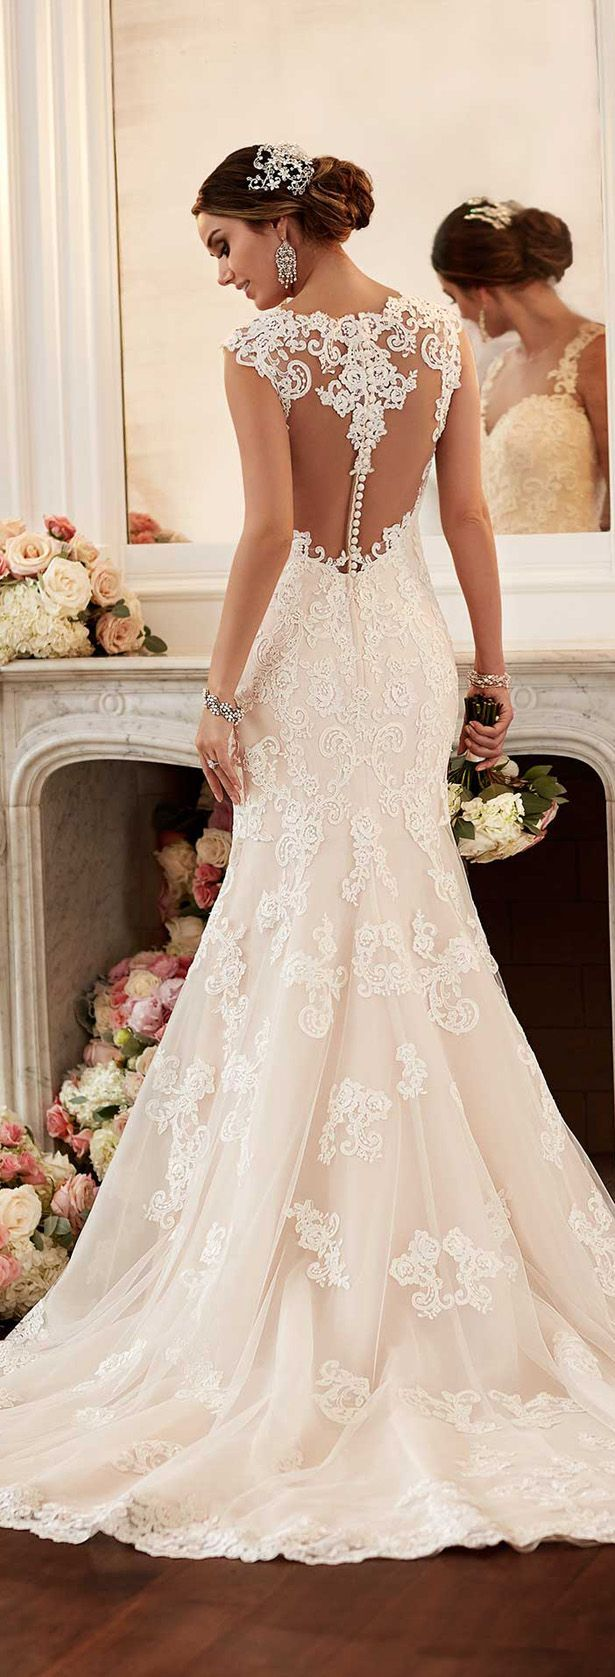 Wedding Table Pinterest Wedding Dress 17 best ideas about wedding dresses on pinterest weeding mesmerizing dress that would make you a fairy princess